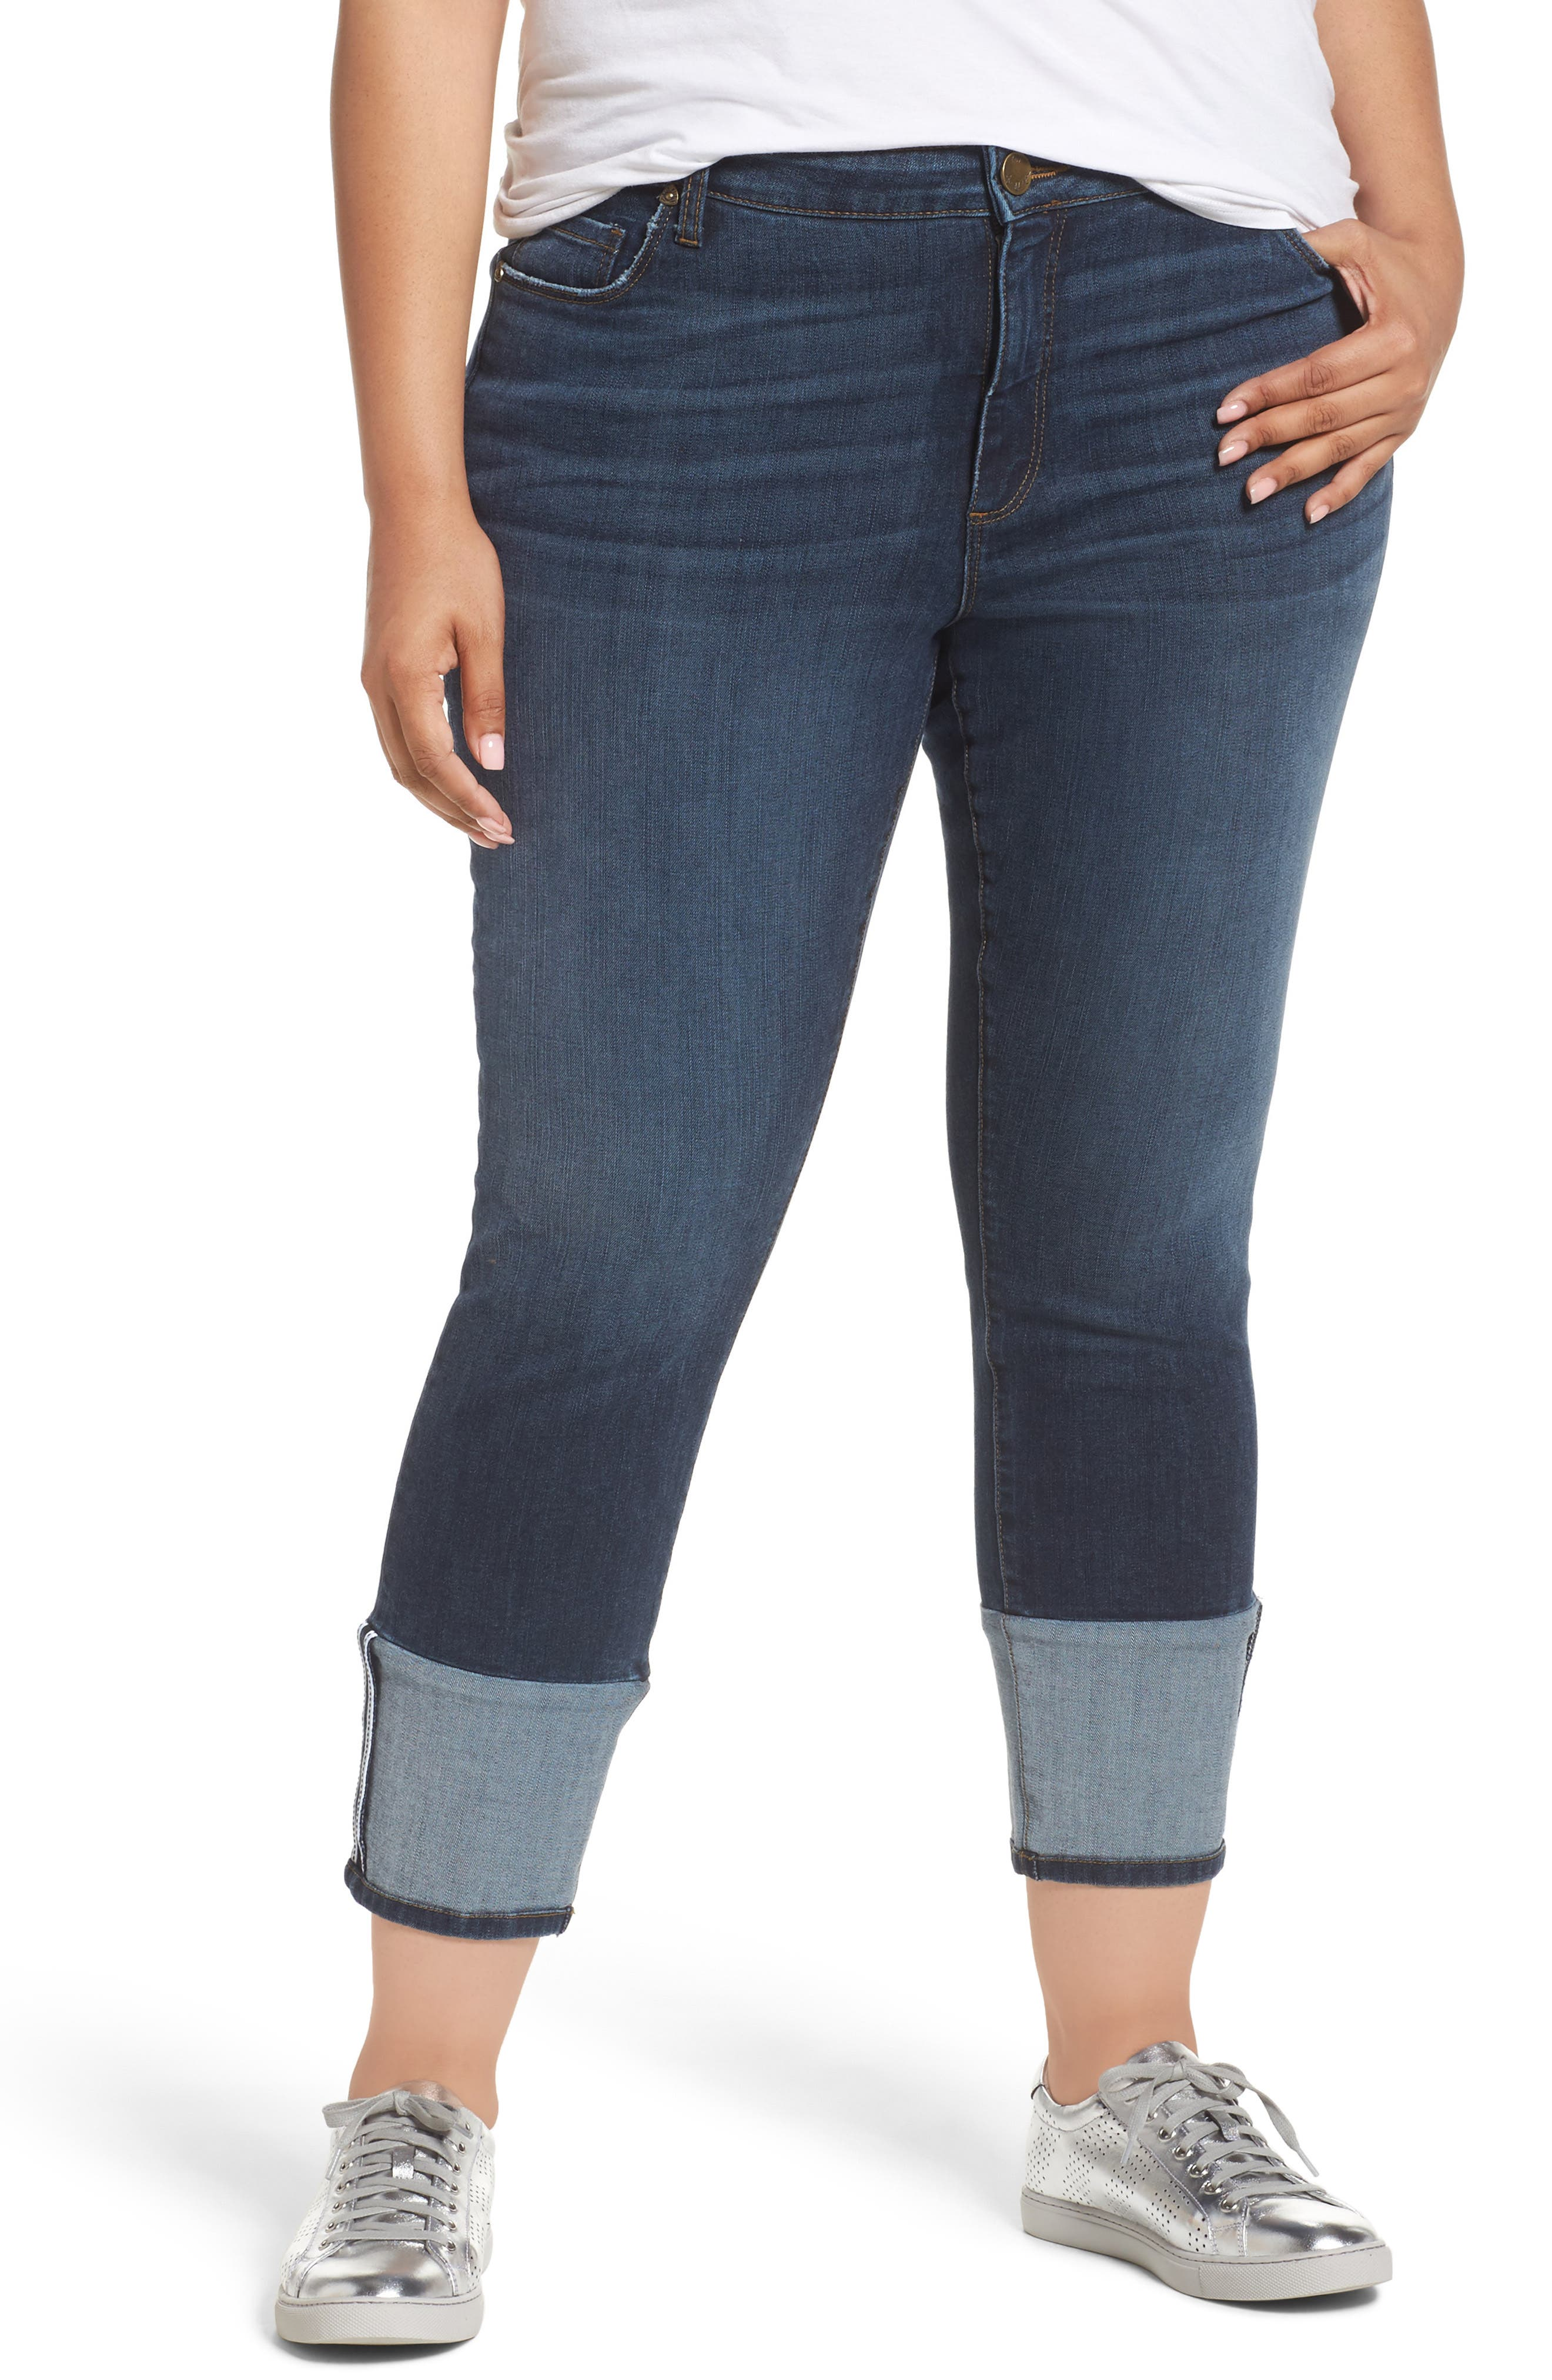 KUT from the Kloth Reese Straight Leg Ankle Jeans (Stimulating) (Plus Size)